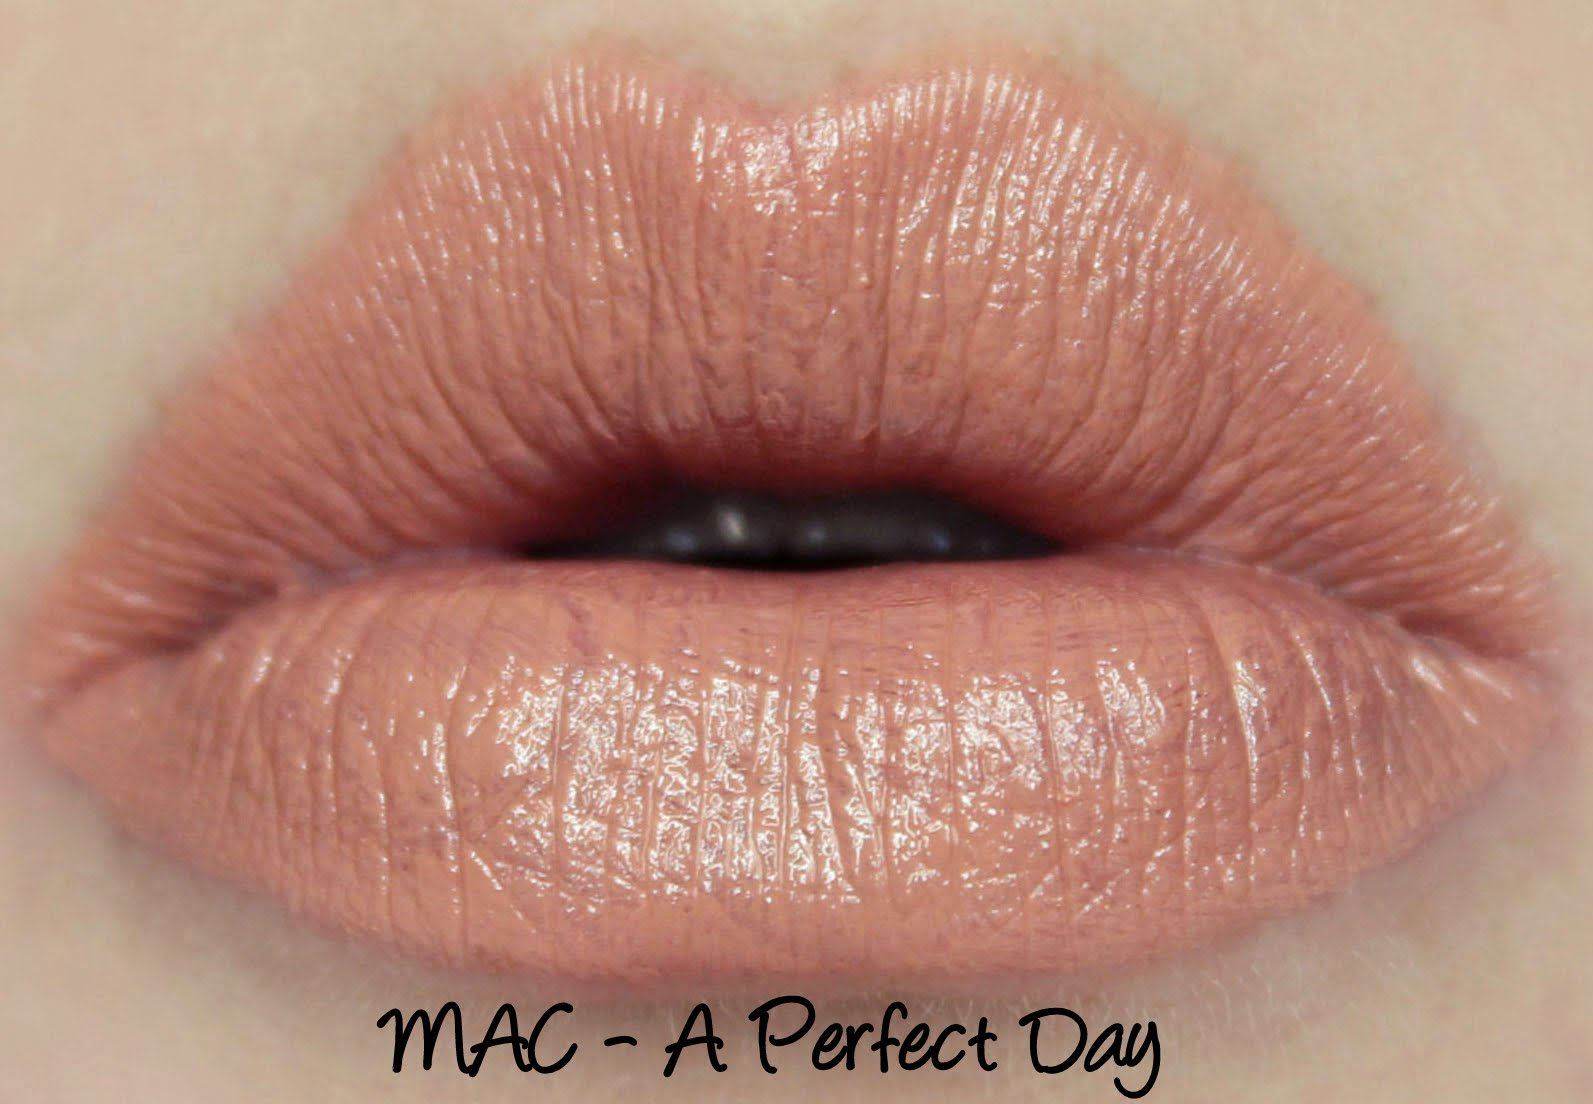 MAC Monday: A Perfect Day Lipstick Swatches & Review